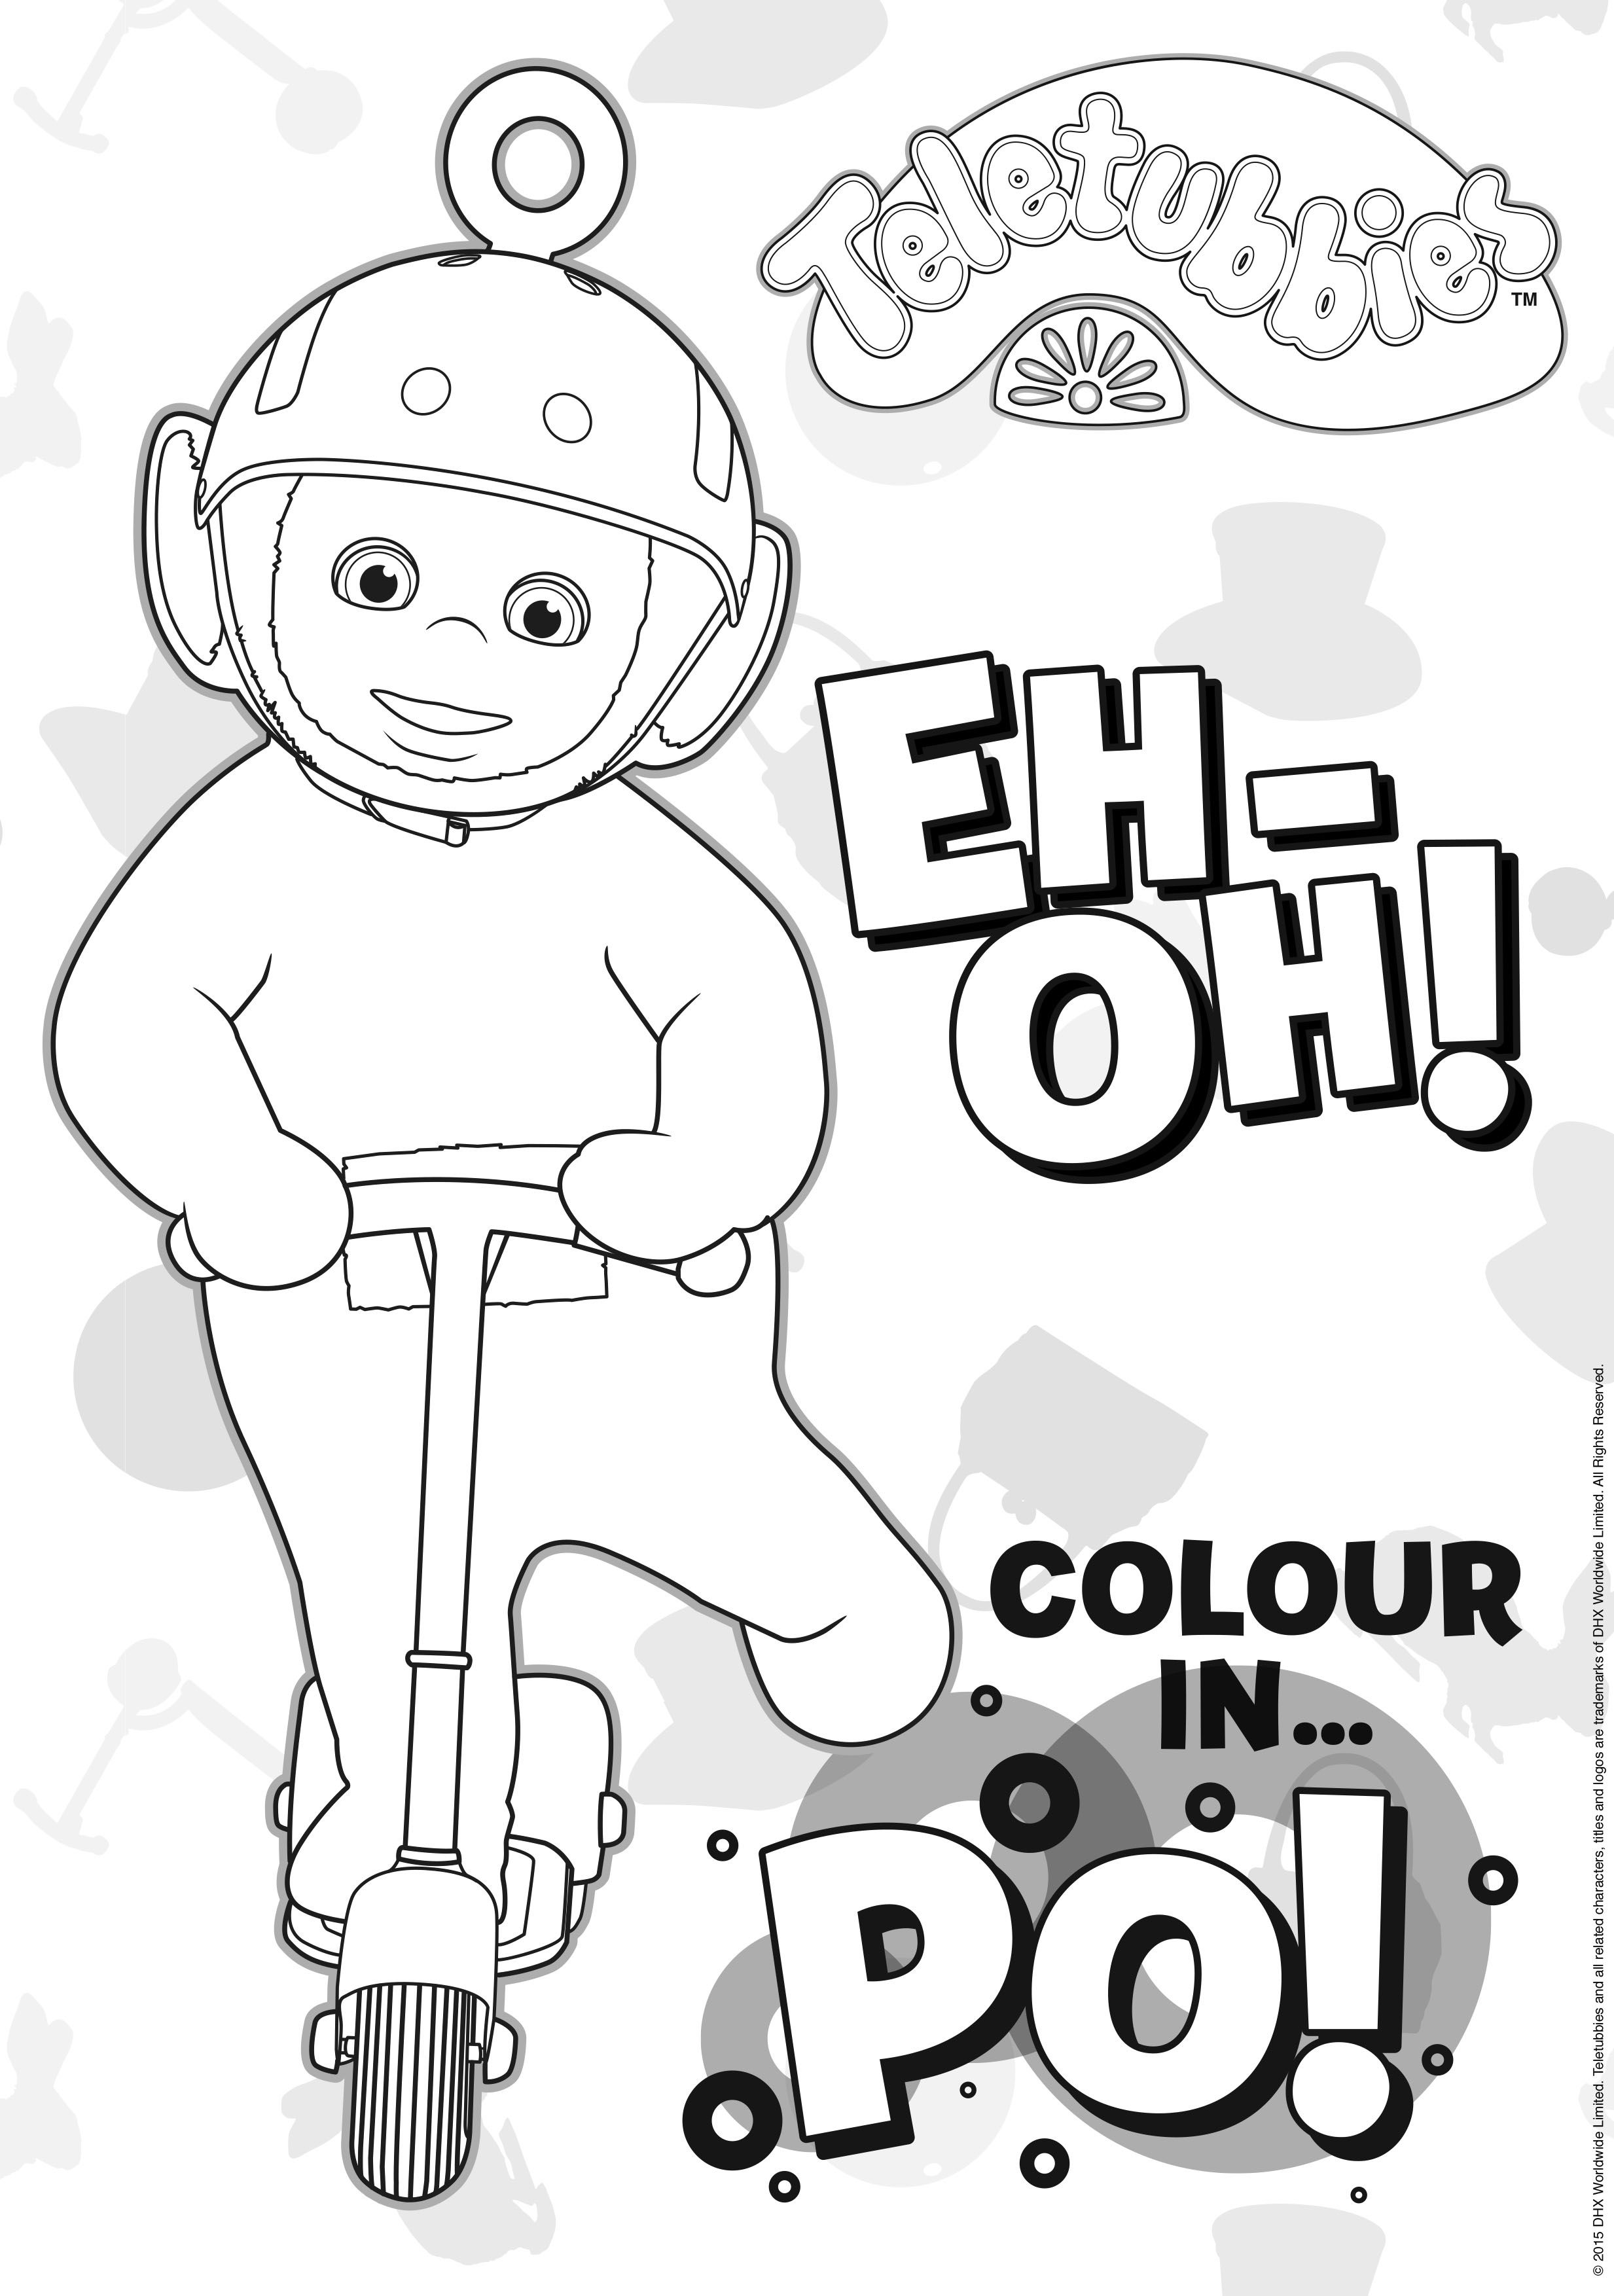 Lets get colouring in po have you printed all of the teletubbies colouring sheets tell us whats been your favourite